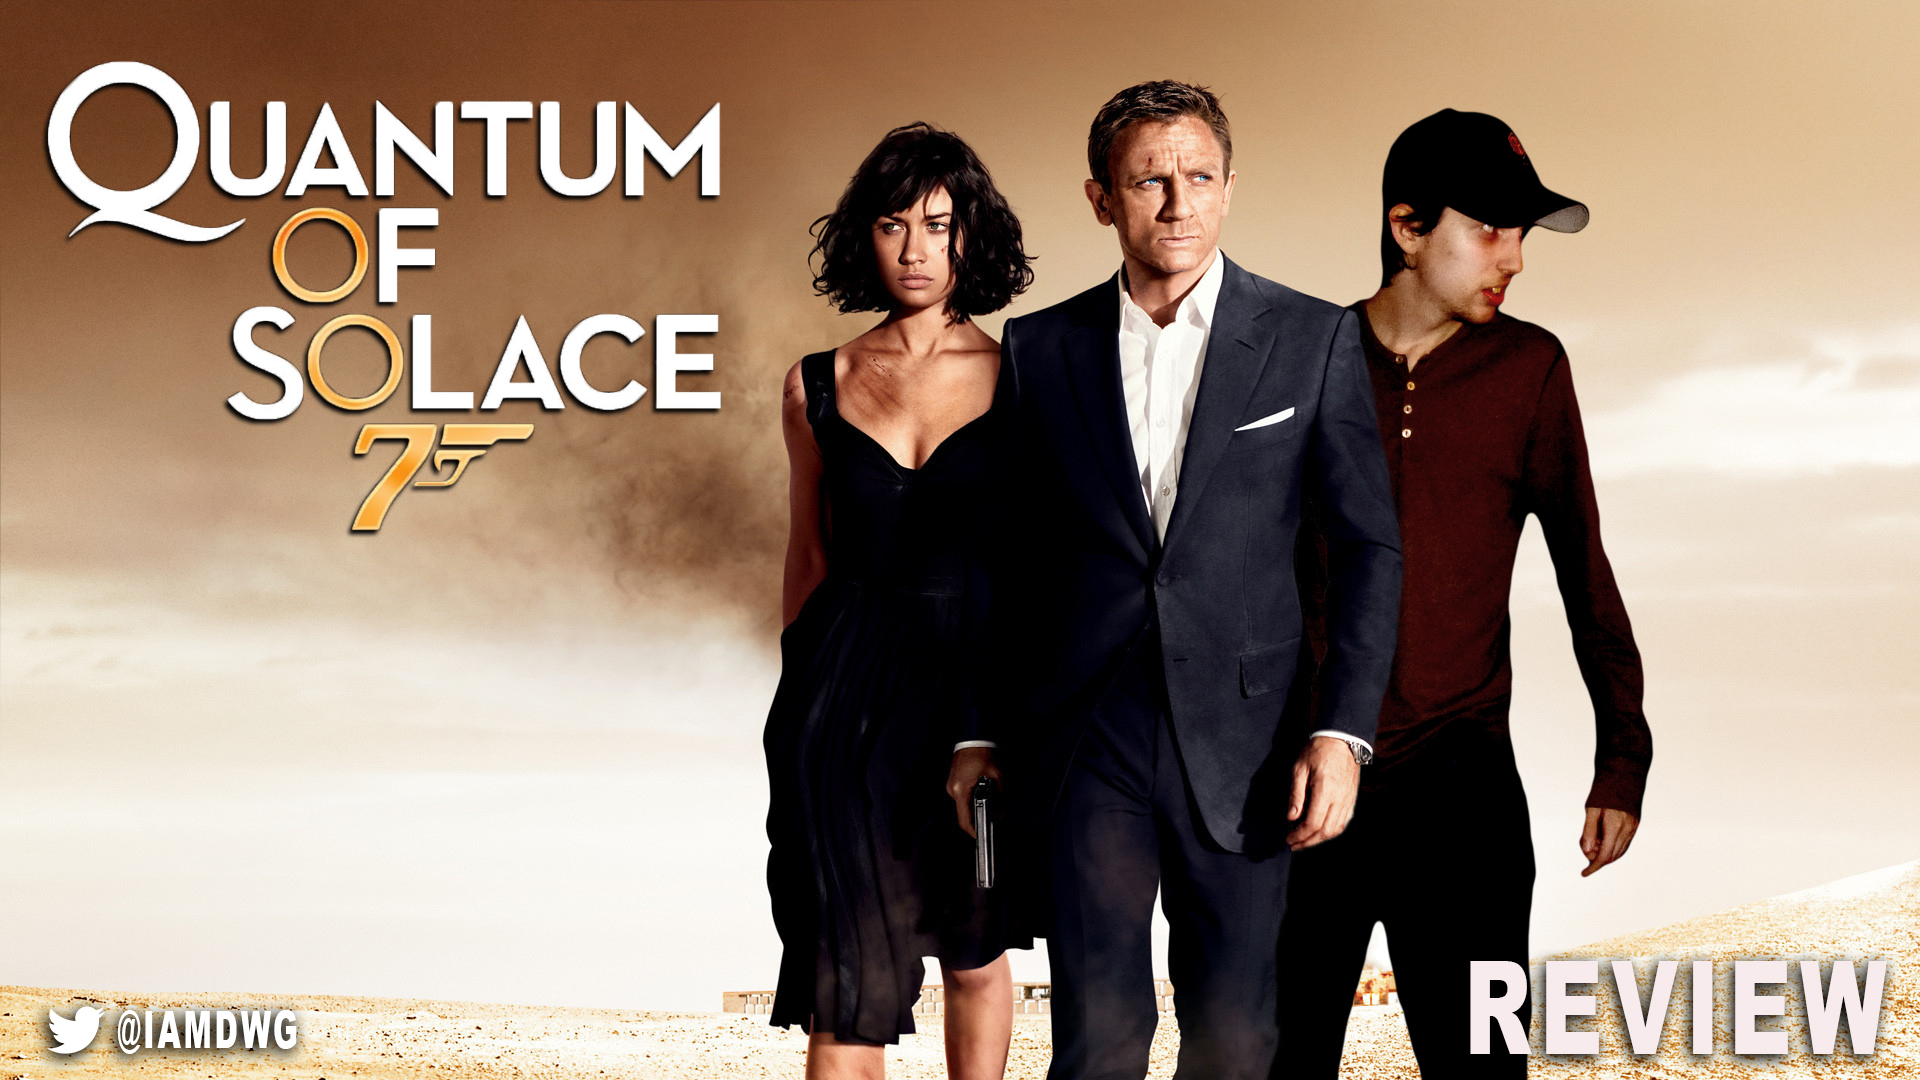 Quantum-of-Solace | Dave Examines Movies